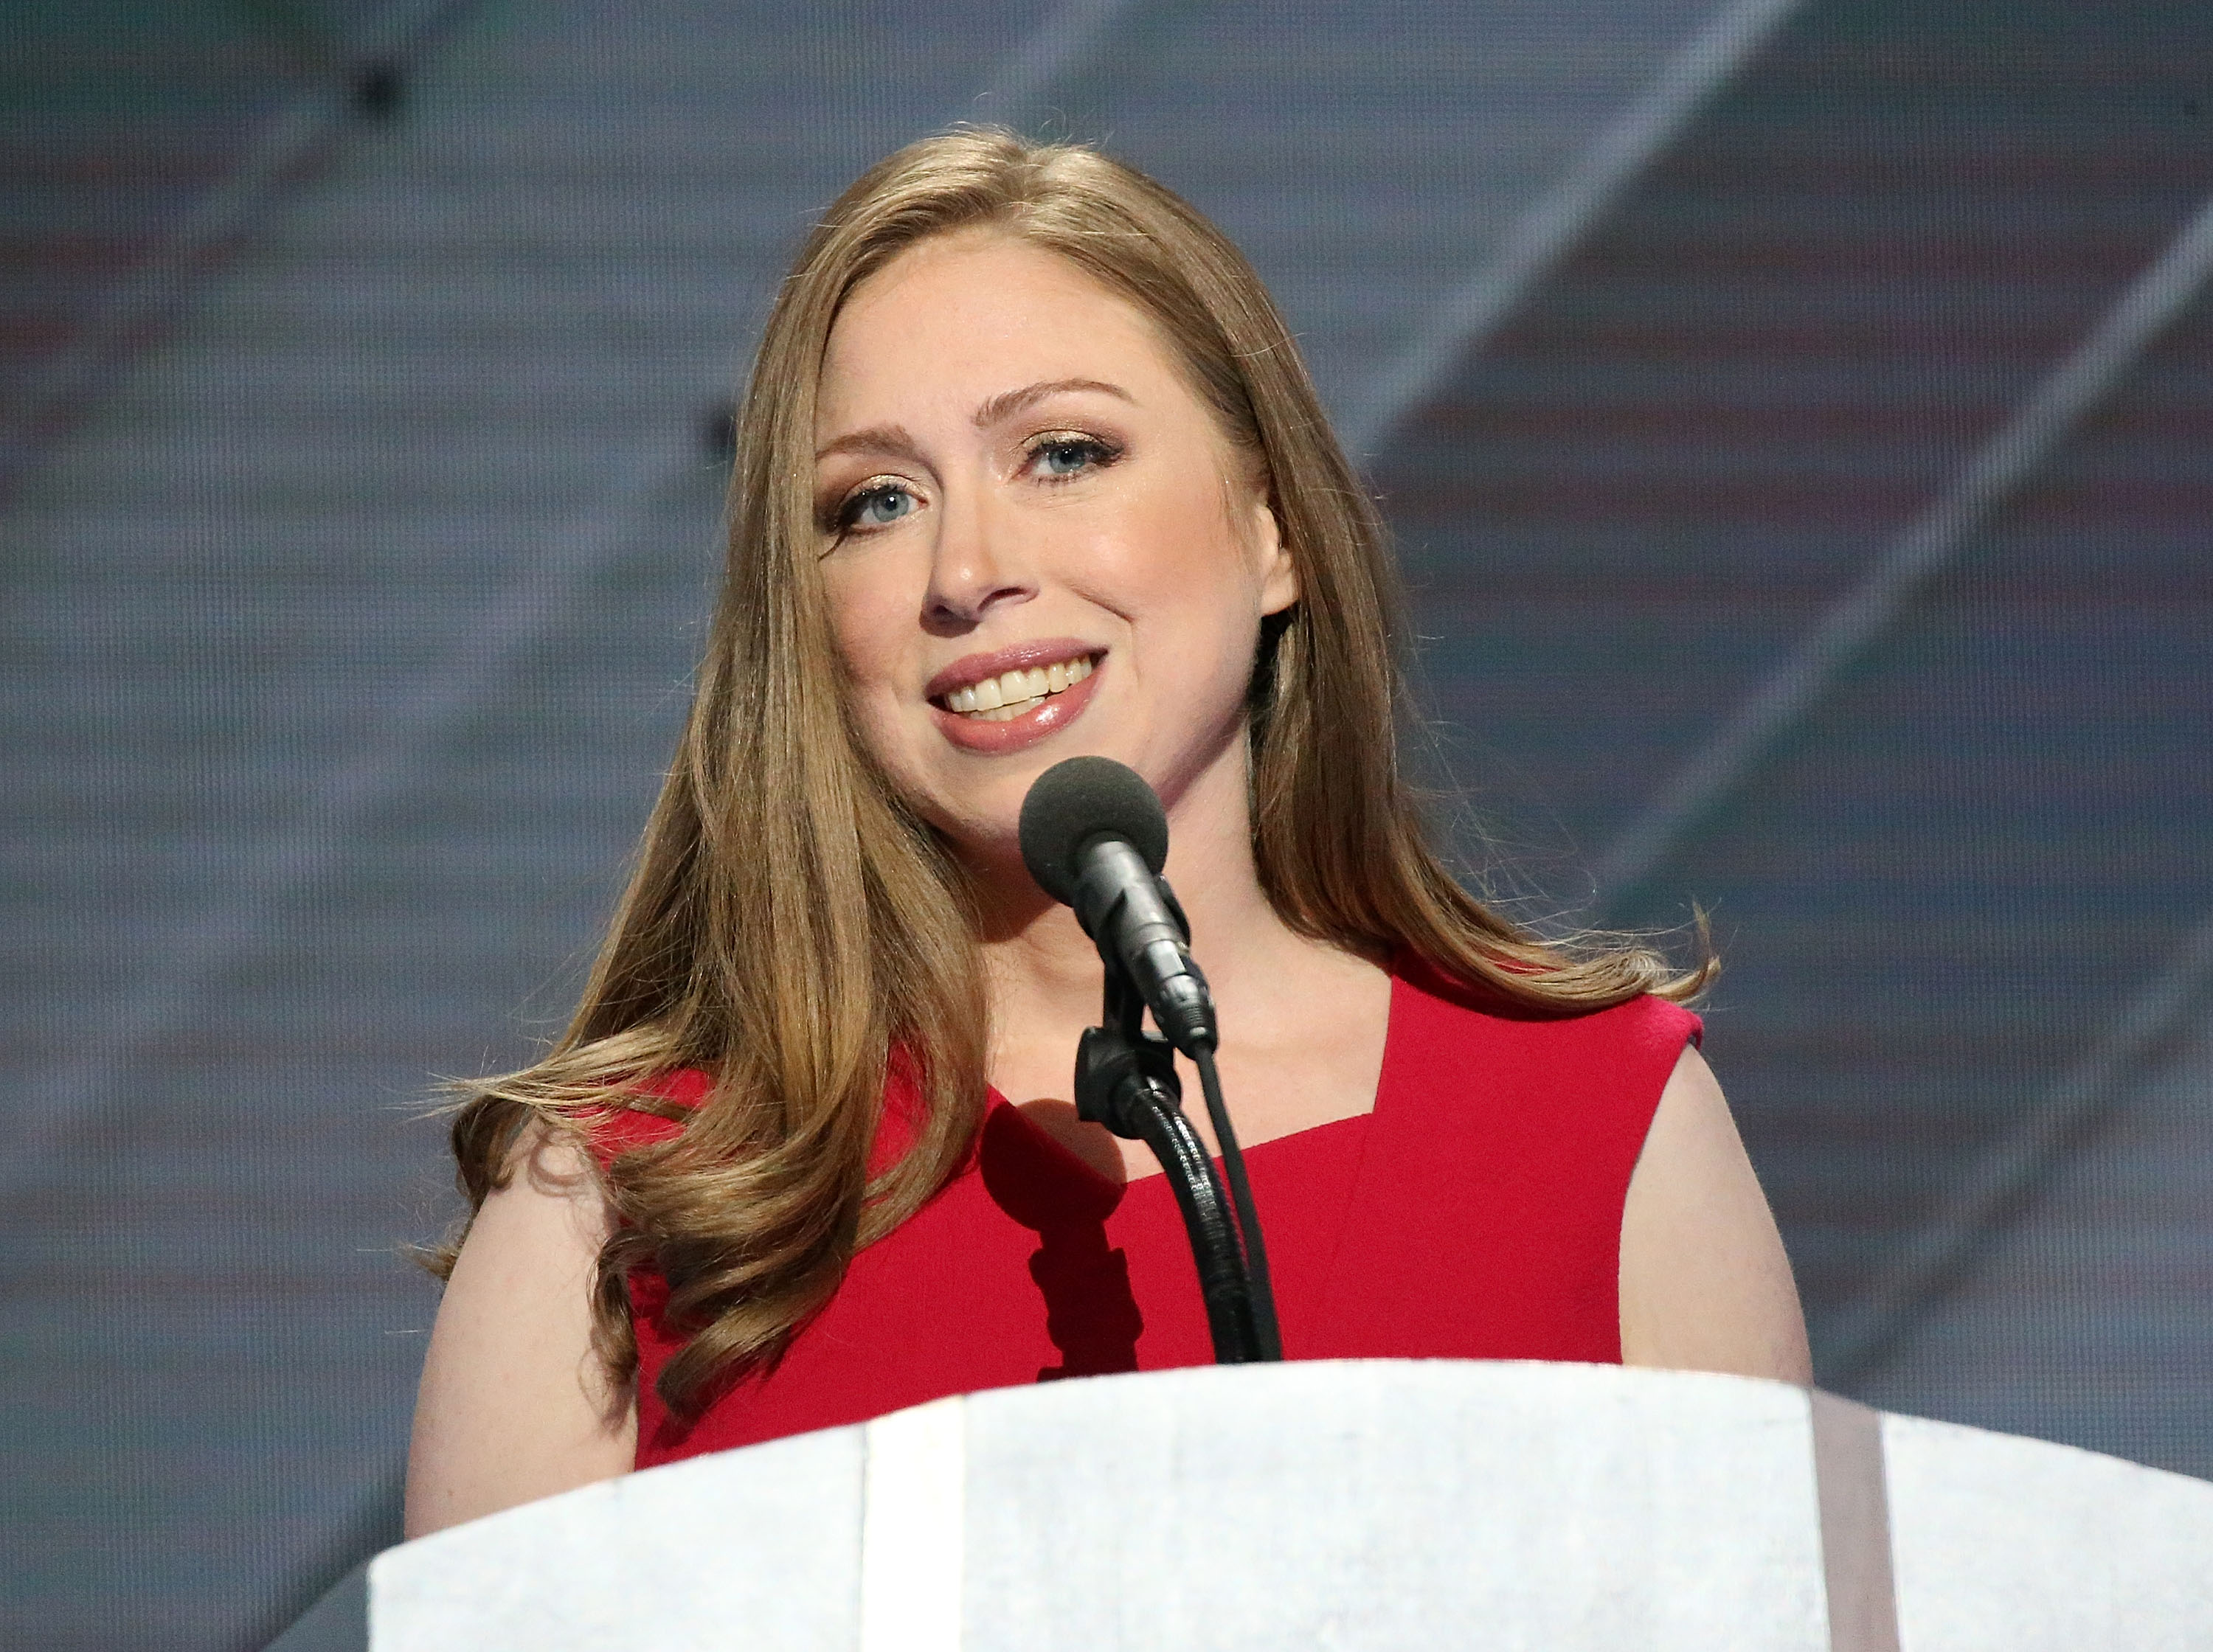 Chelsea Clinton delivers remarks on the fourth day of the Democratic National Convention at the Wells Fargo Center on July 28, 2016 in Philadelphia.